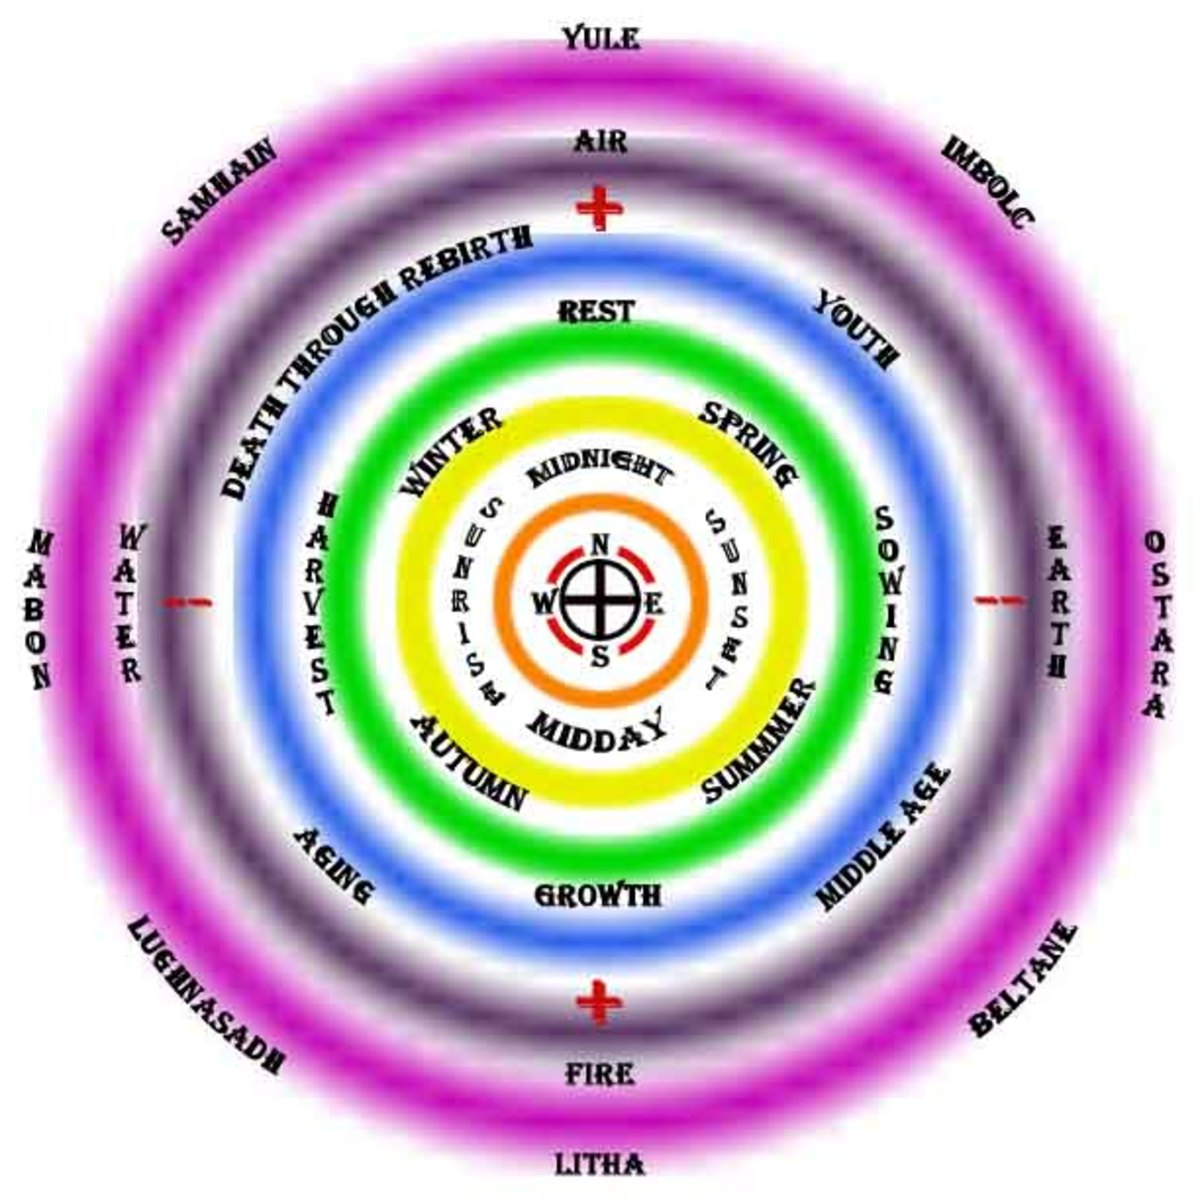 Notice the harmony and the flow between the directions, times of day, times of year, times of life, elements and more.